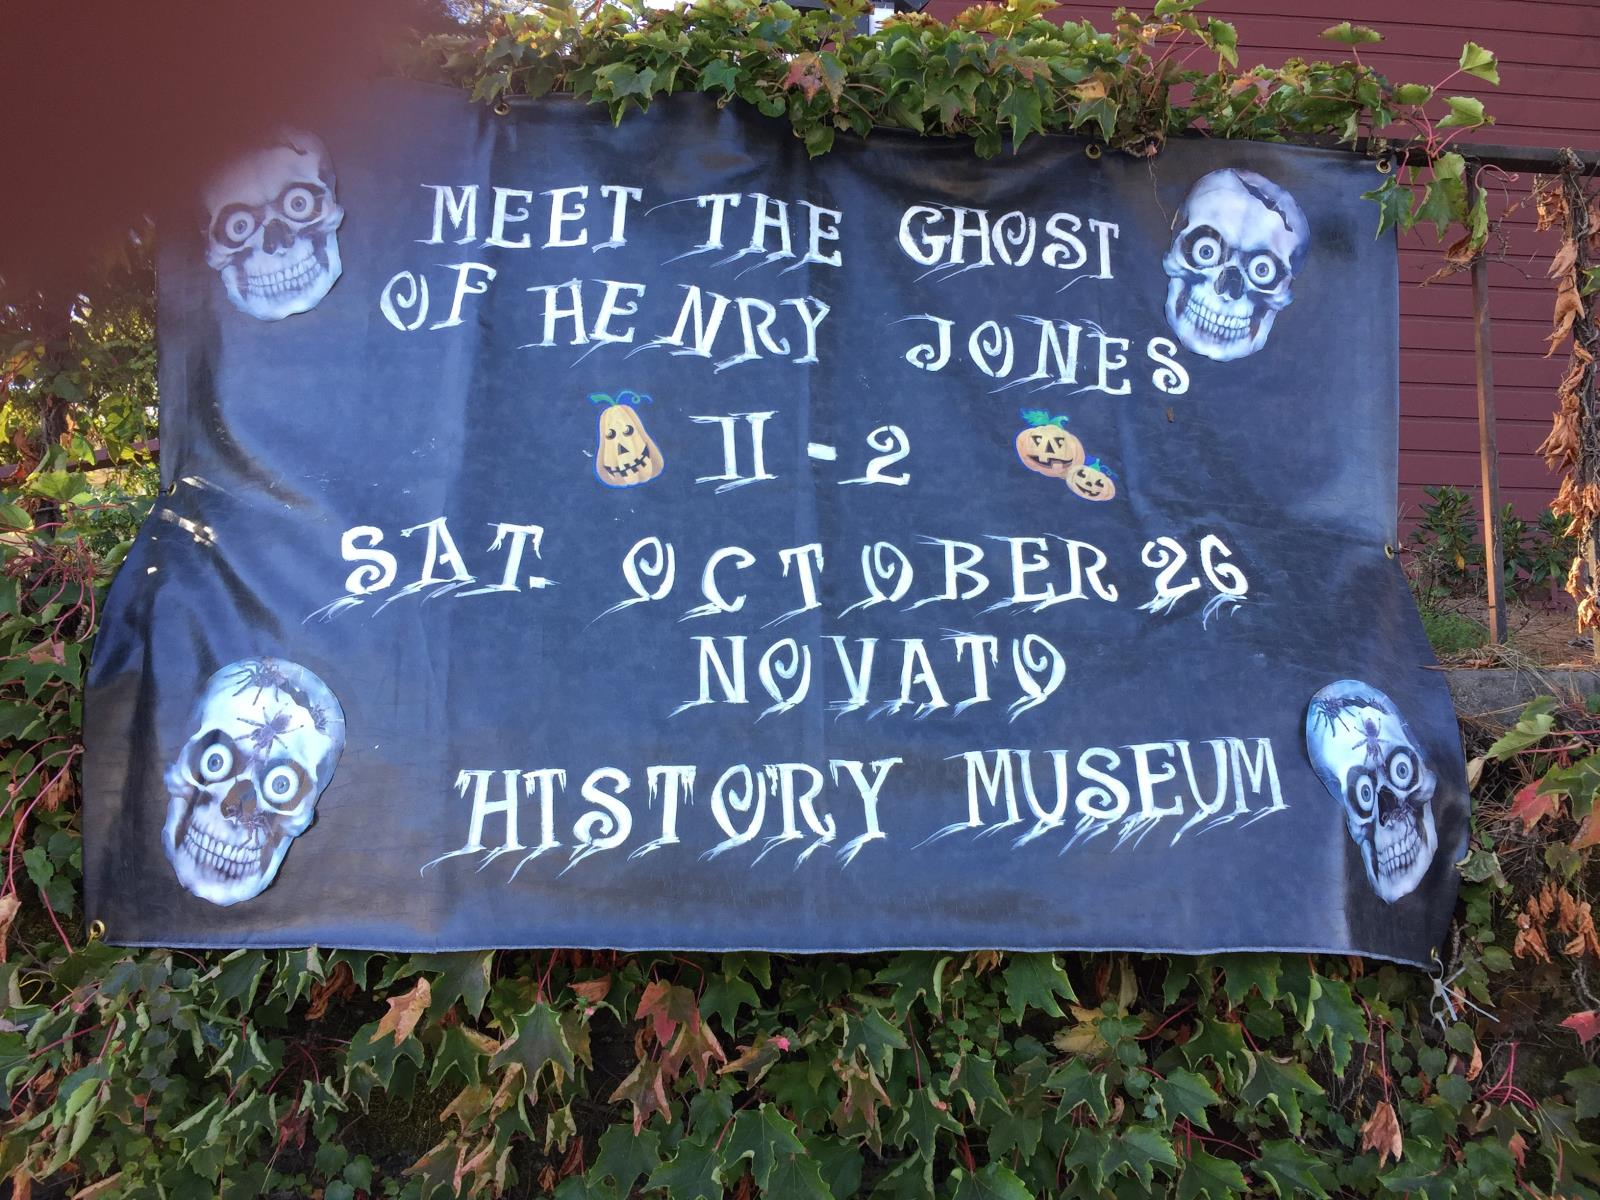 Photo of Novato History Museum sign for Halloween event